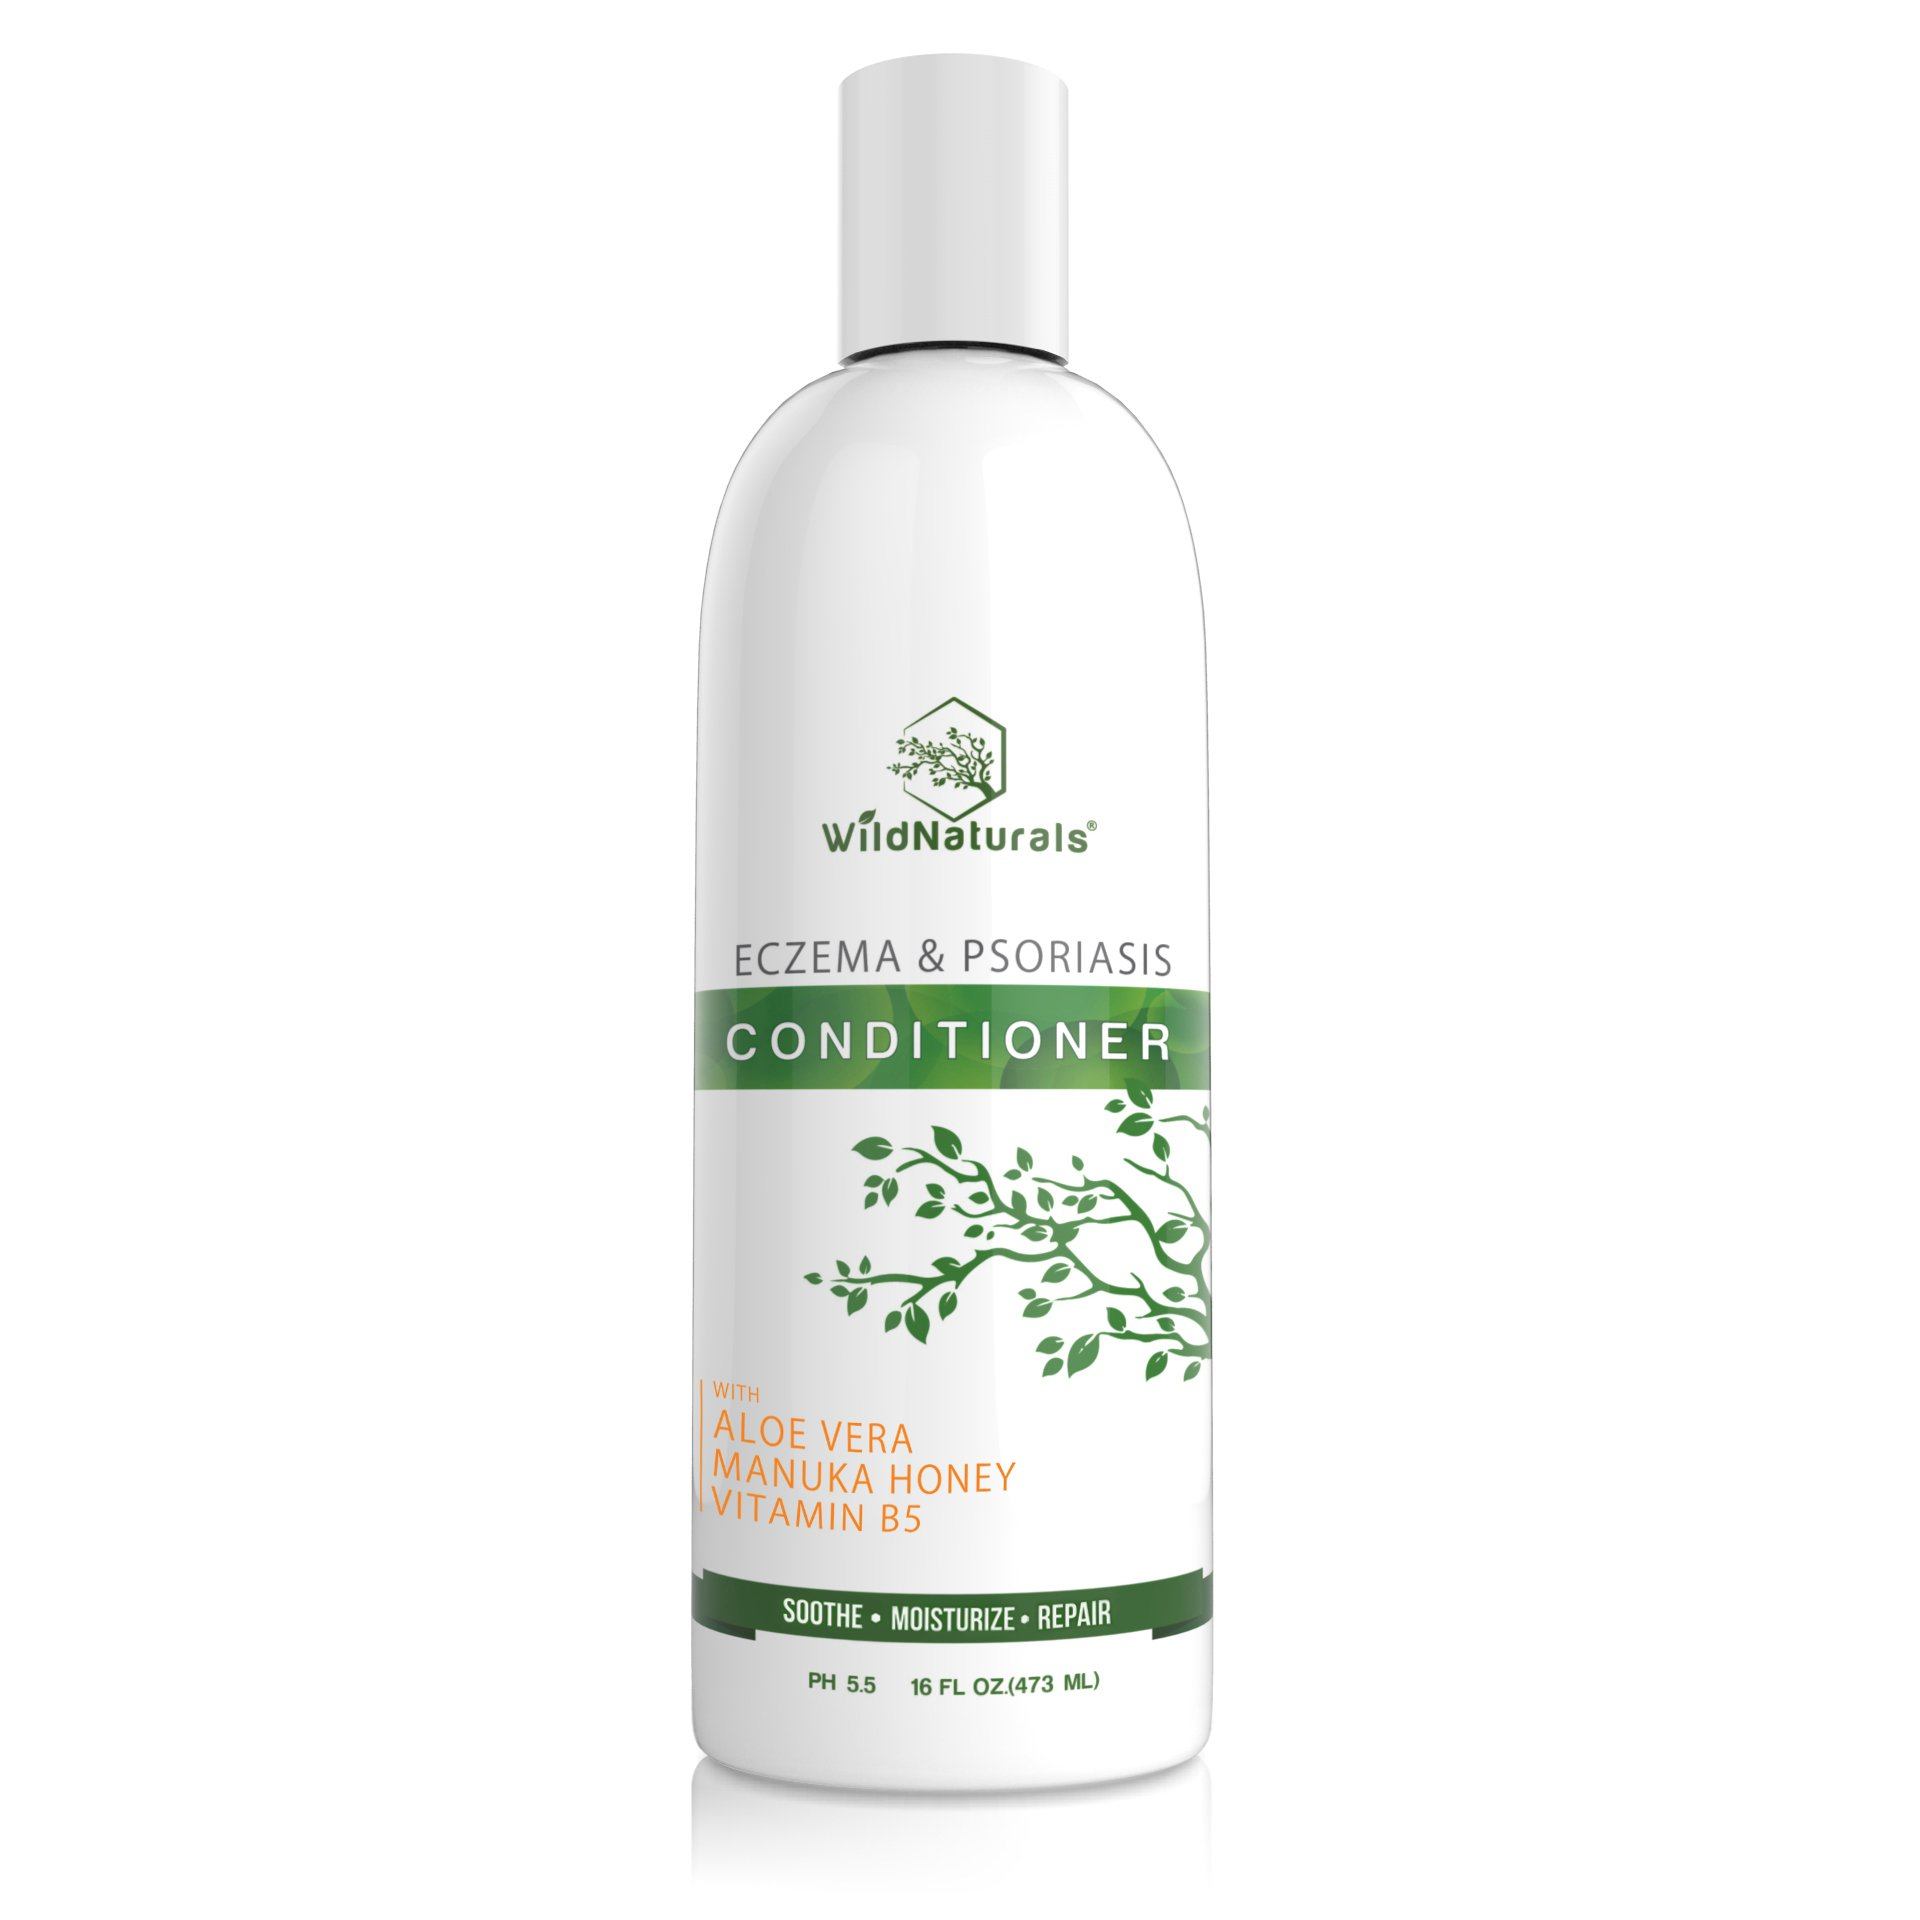 Wild Naturals Eczema Psoriasis Conditioner : 98% Natural, 80% Organic, Sulfate Free, Soothing, Healing, Anti Dandruff, Flaky, Itchy, Dry Scalp Treatment for Seborrheic Dermatitis, Moisturizing, 16oz